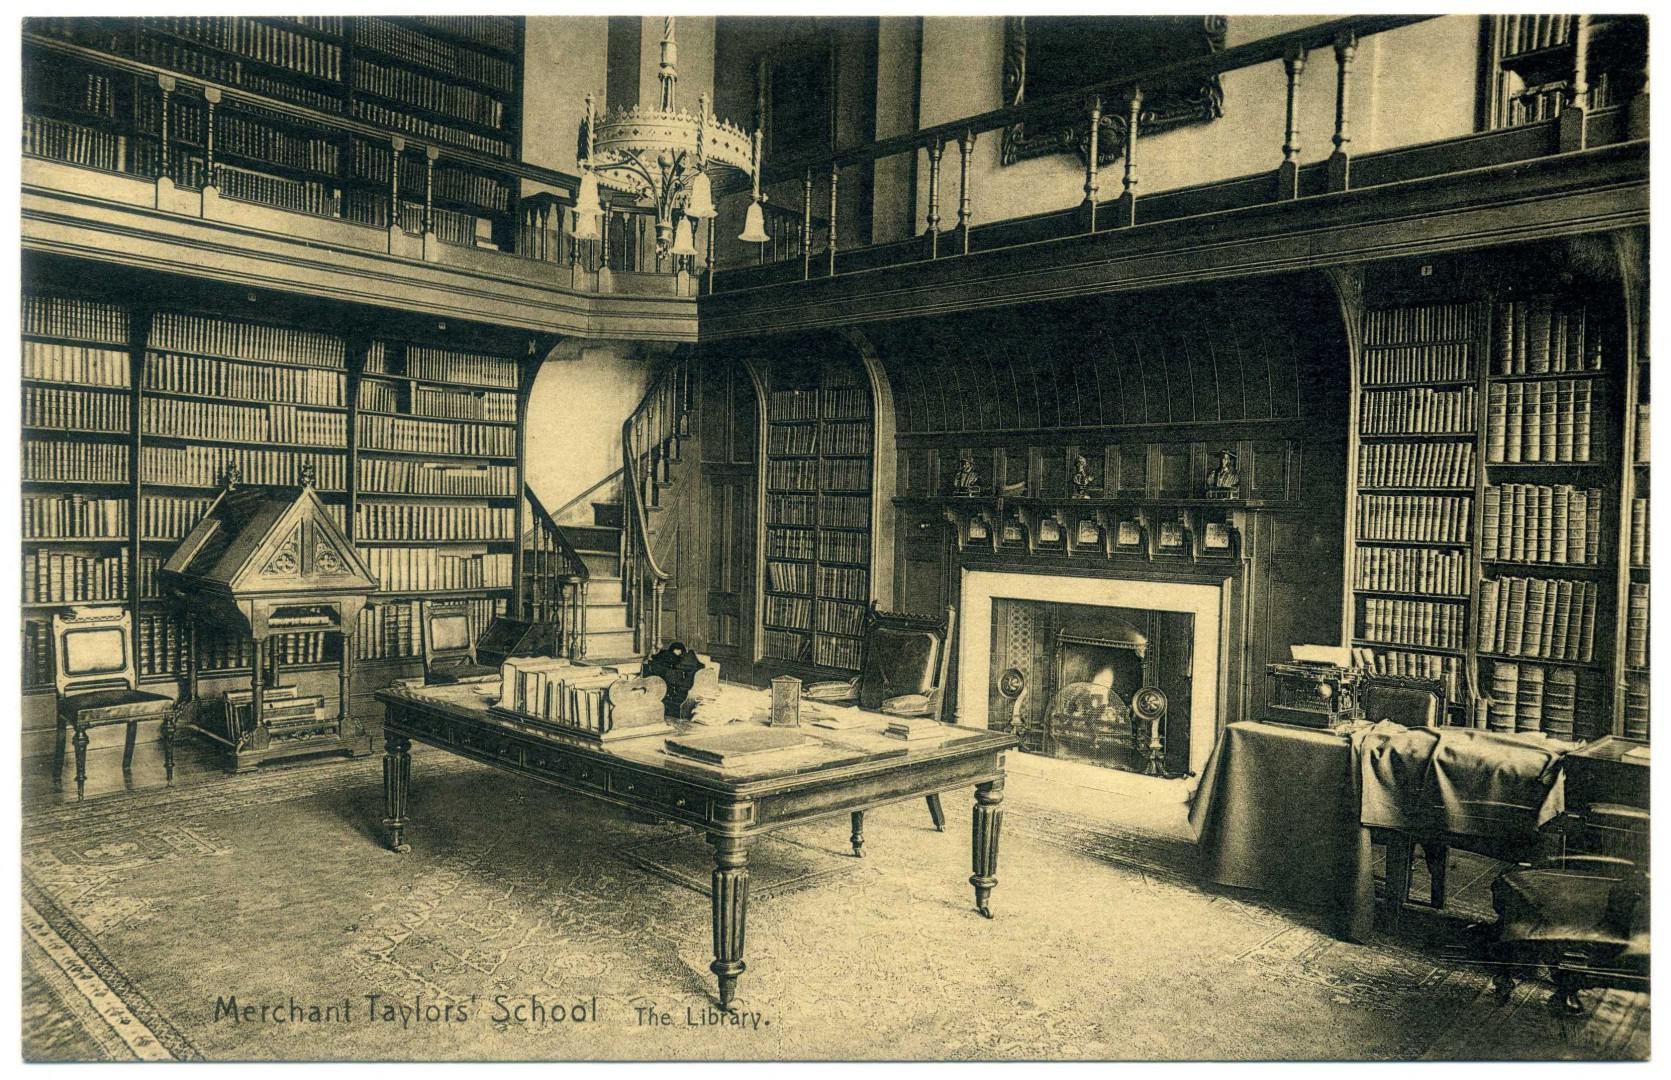 London: Merchant Taylors' School - Library